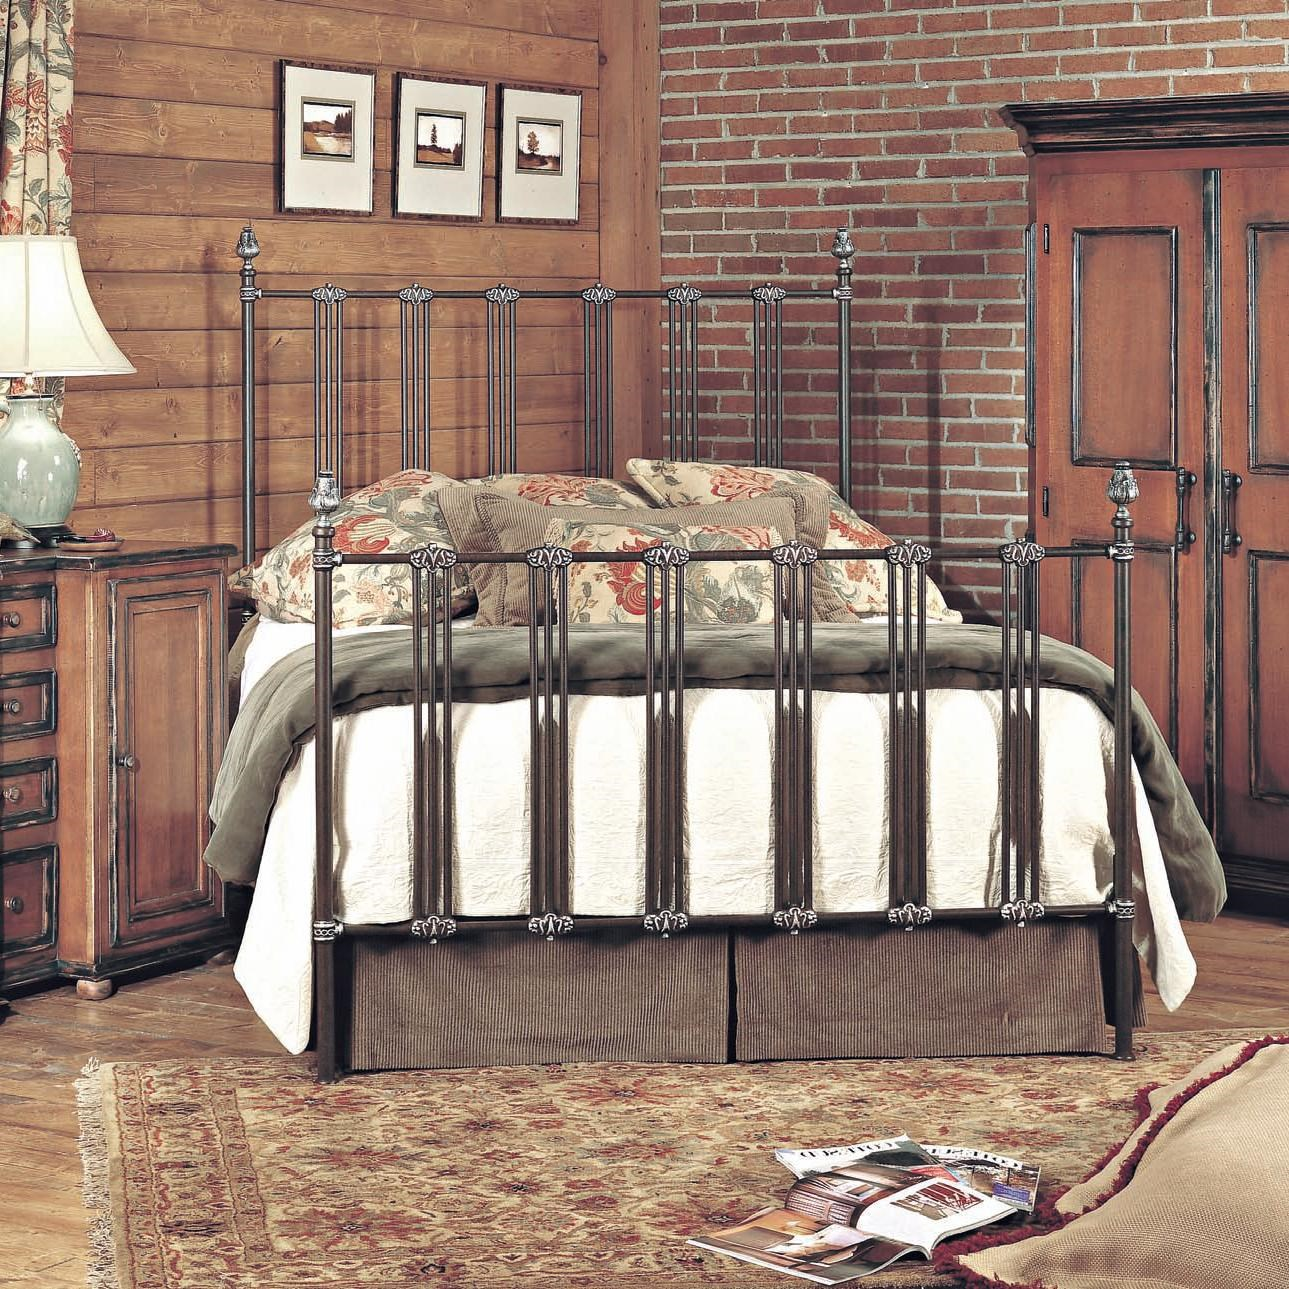 old biscayne designs custom design iron and metal beds dimitri, Headboard designs